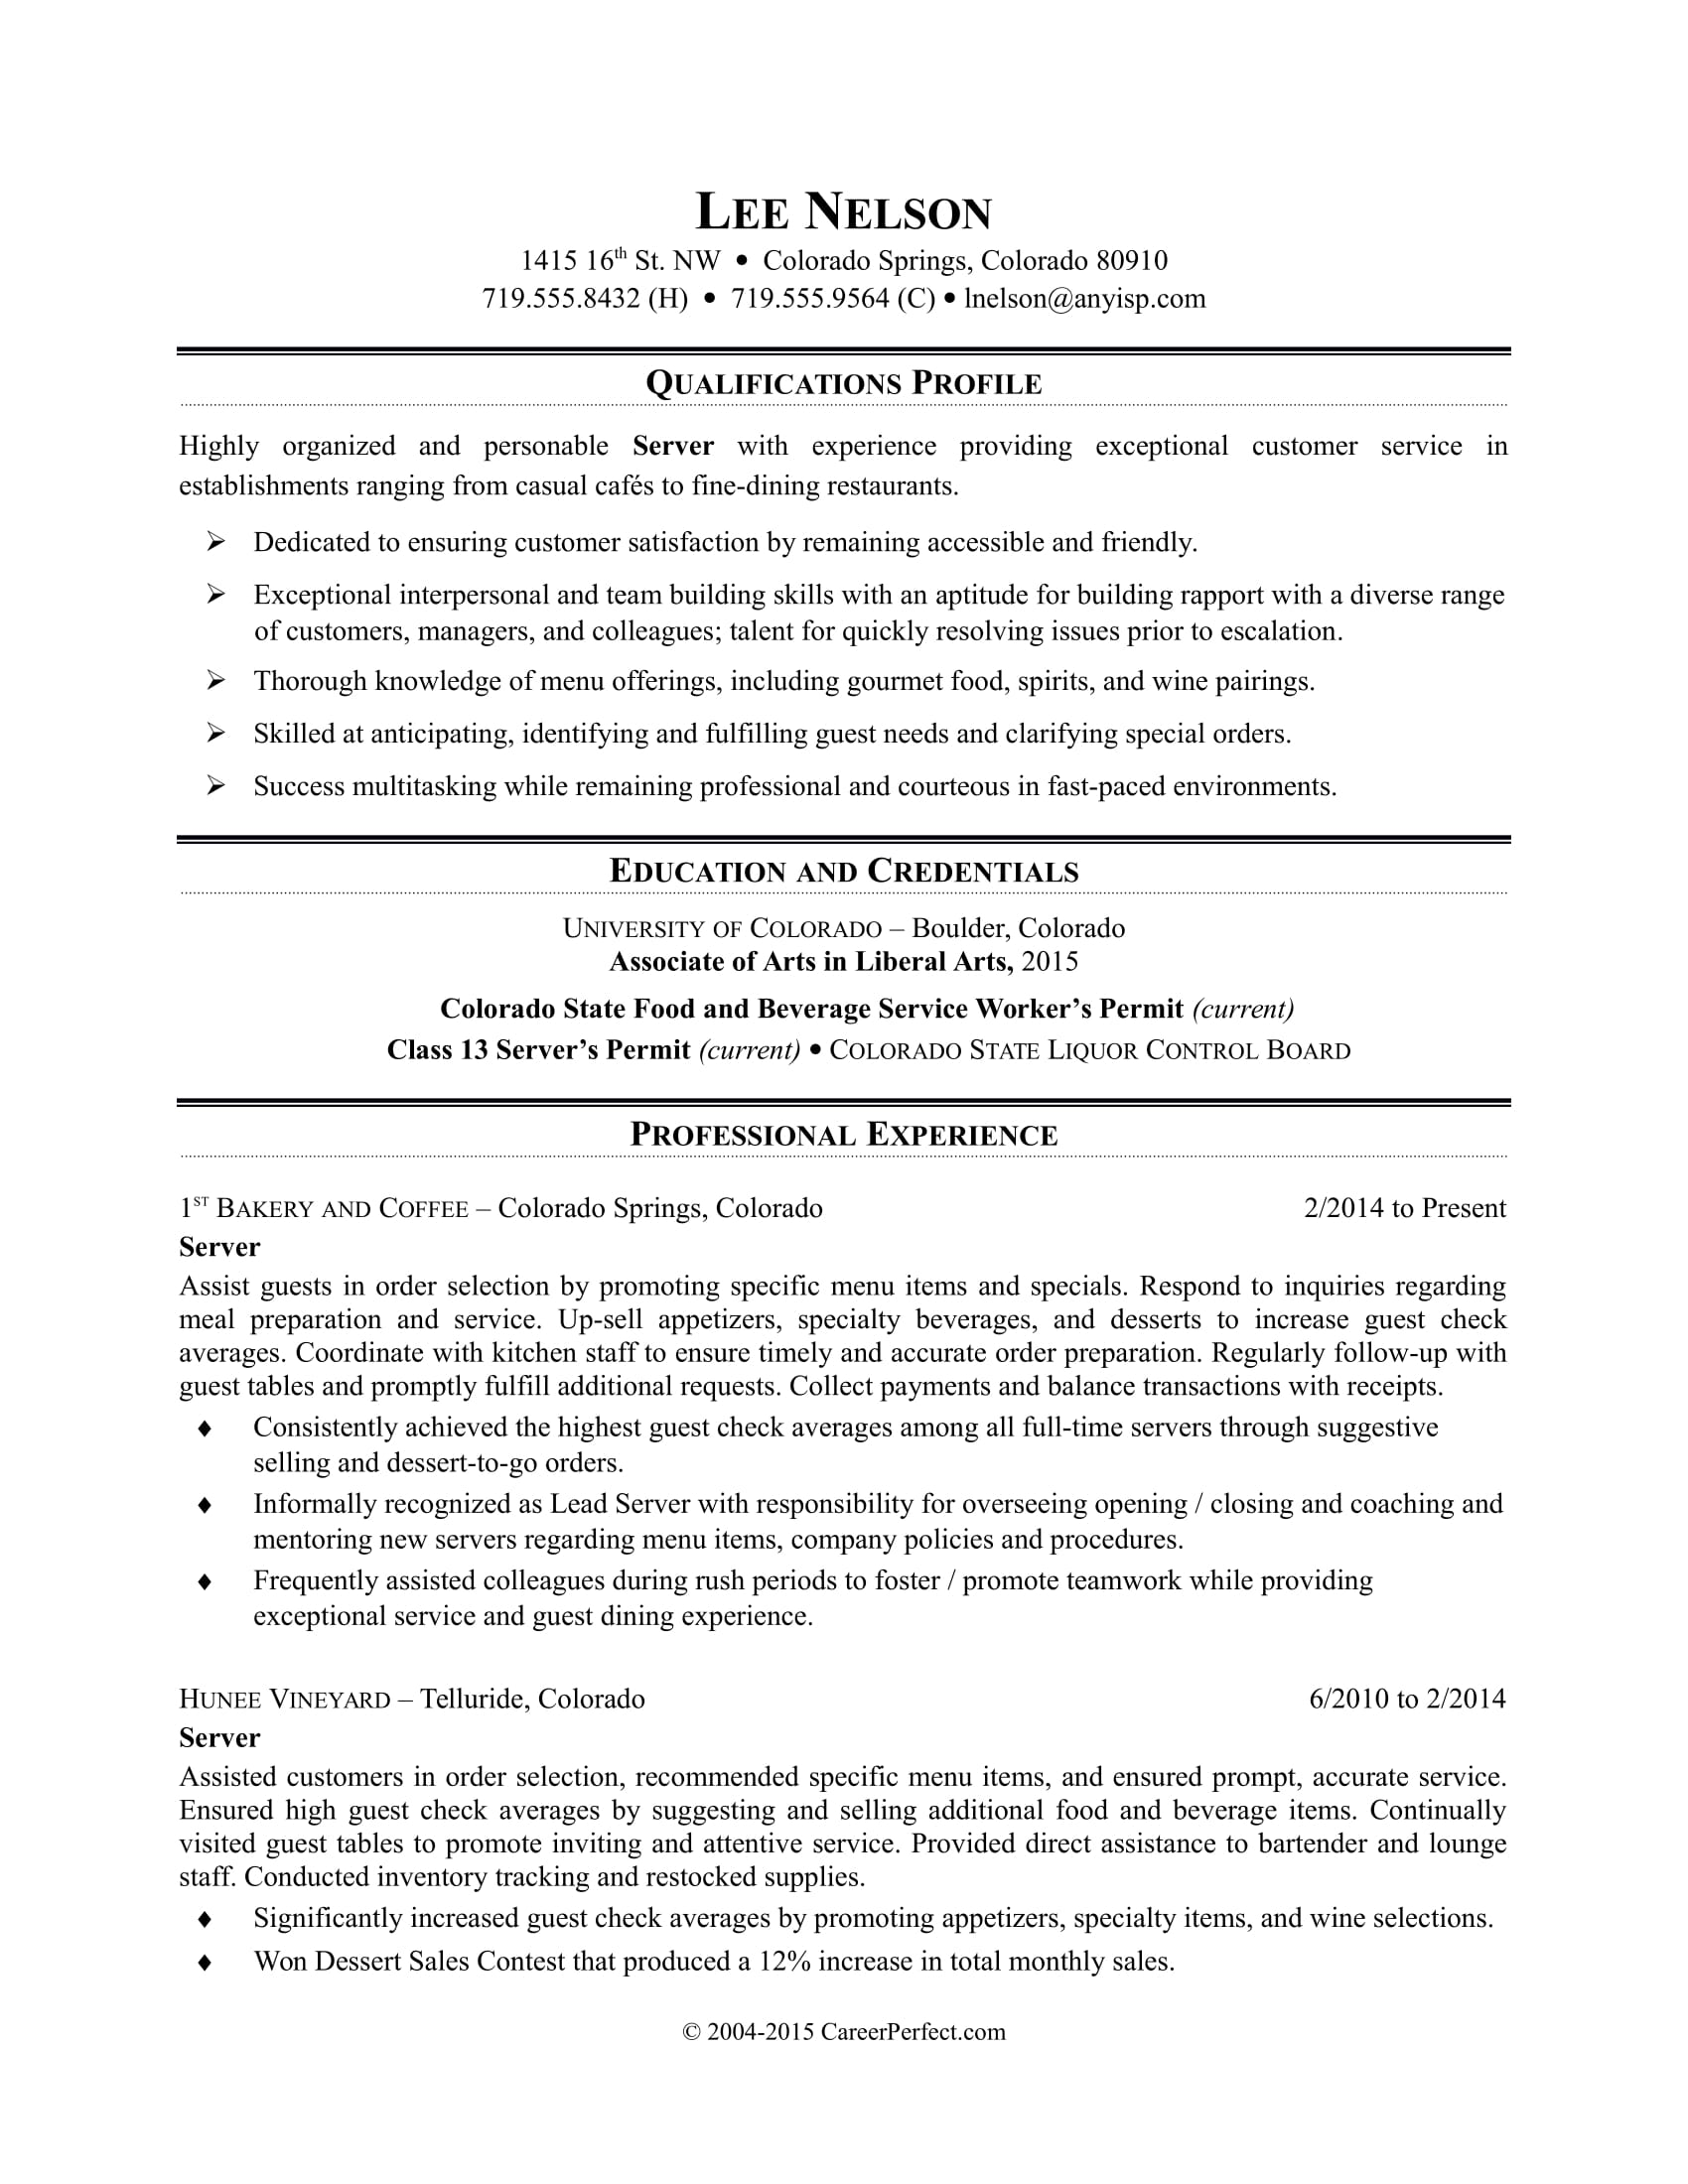 sample resume for a restaurant server - Profile Resume Example